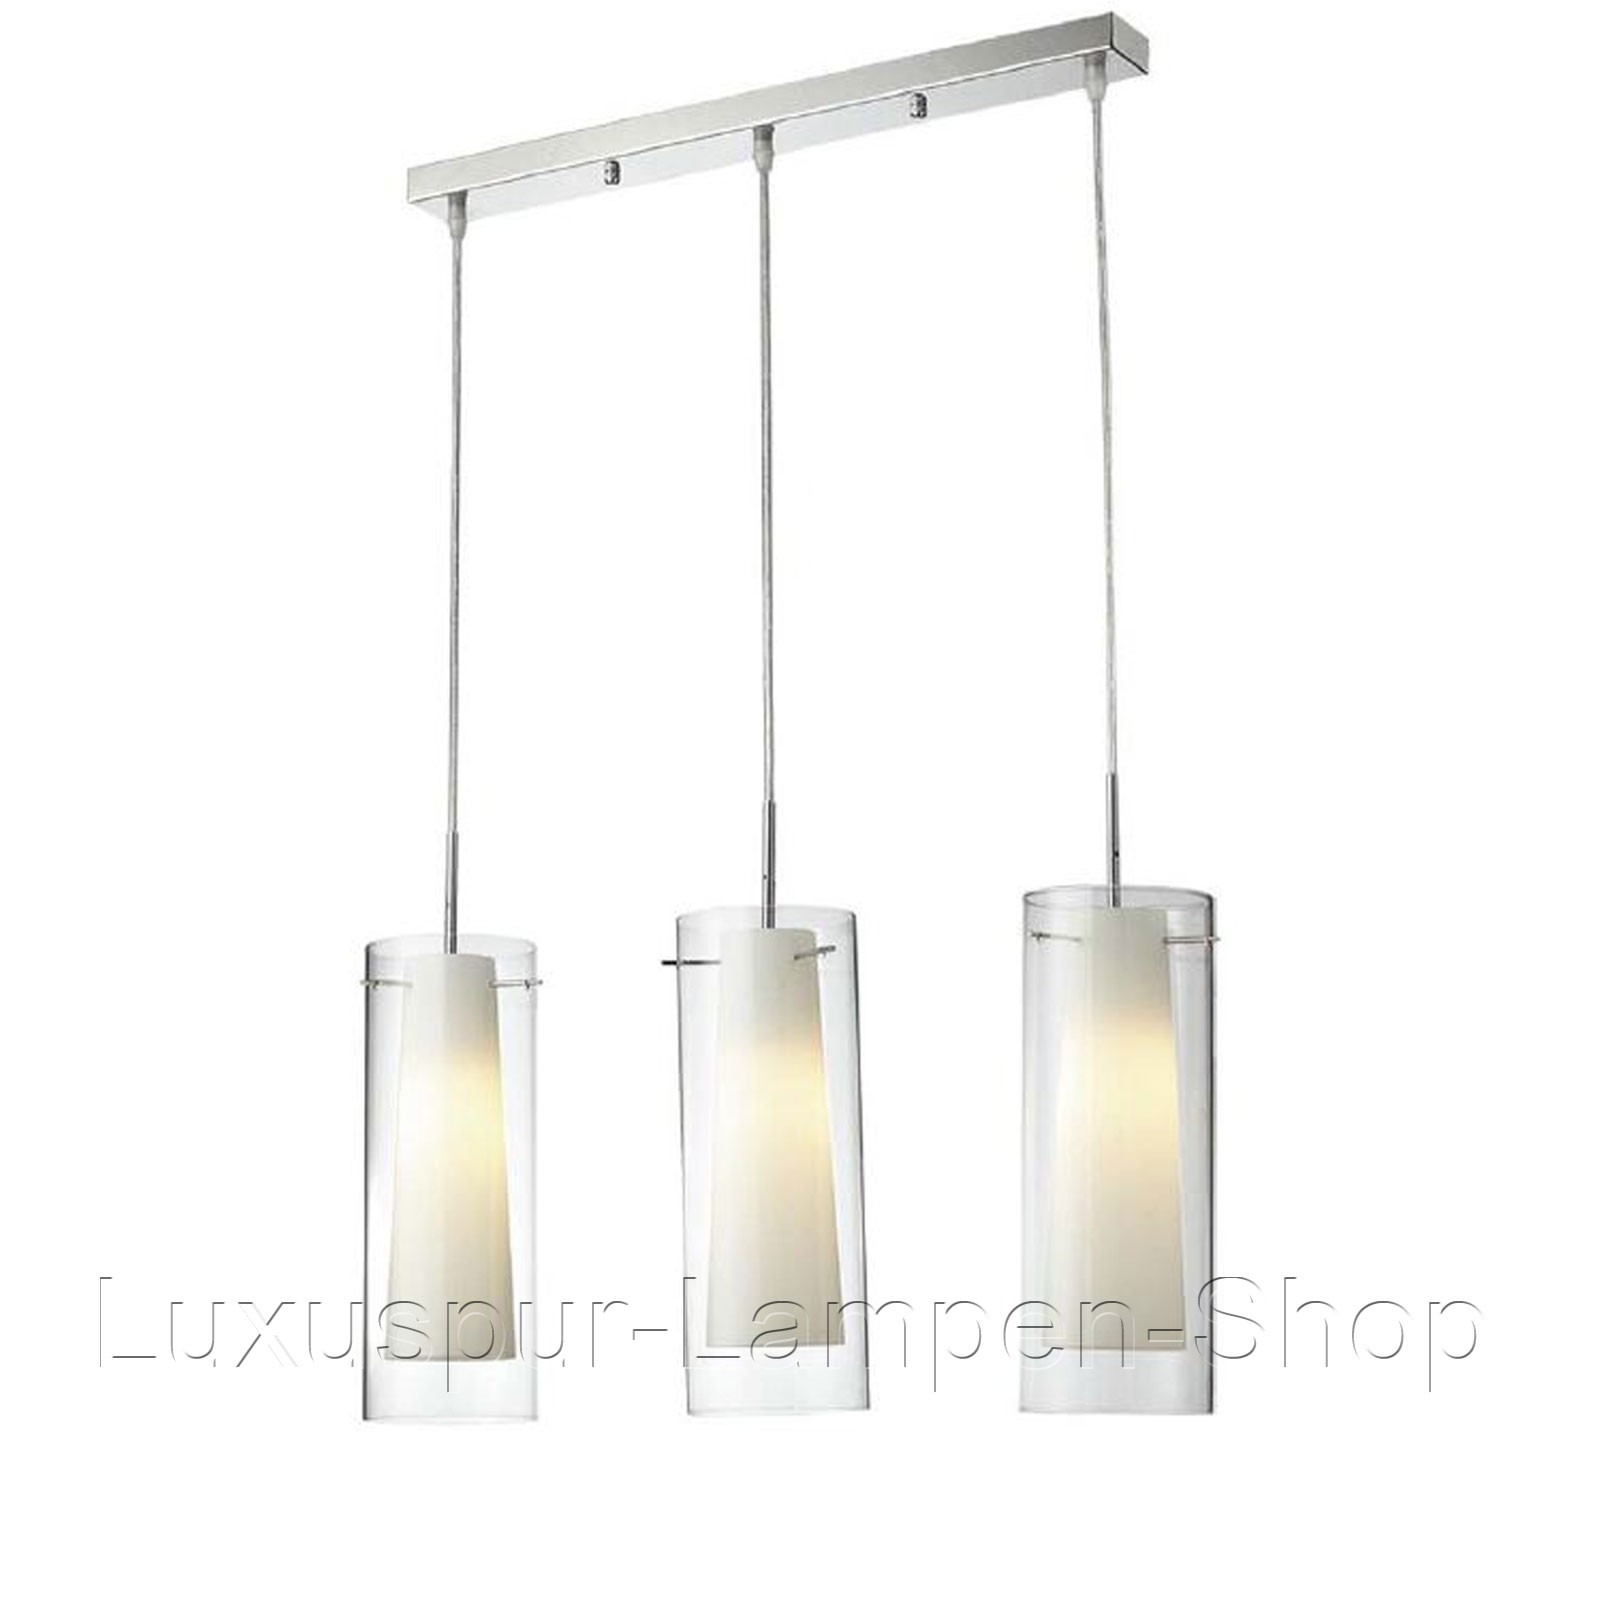 deckenlampe rolo e27 3x60w pendellampe modern rund metall glas silber 120x62cm ebay. Black Bedroom Furniture Sets. Home Design Ideas